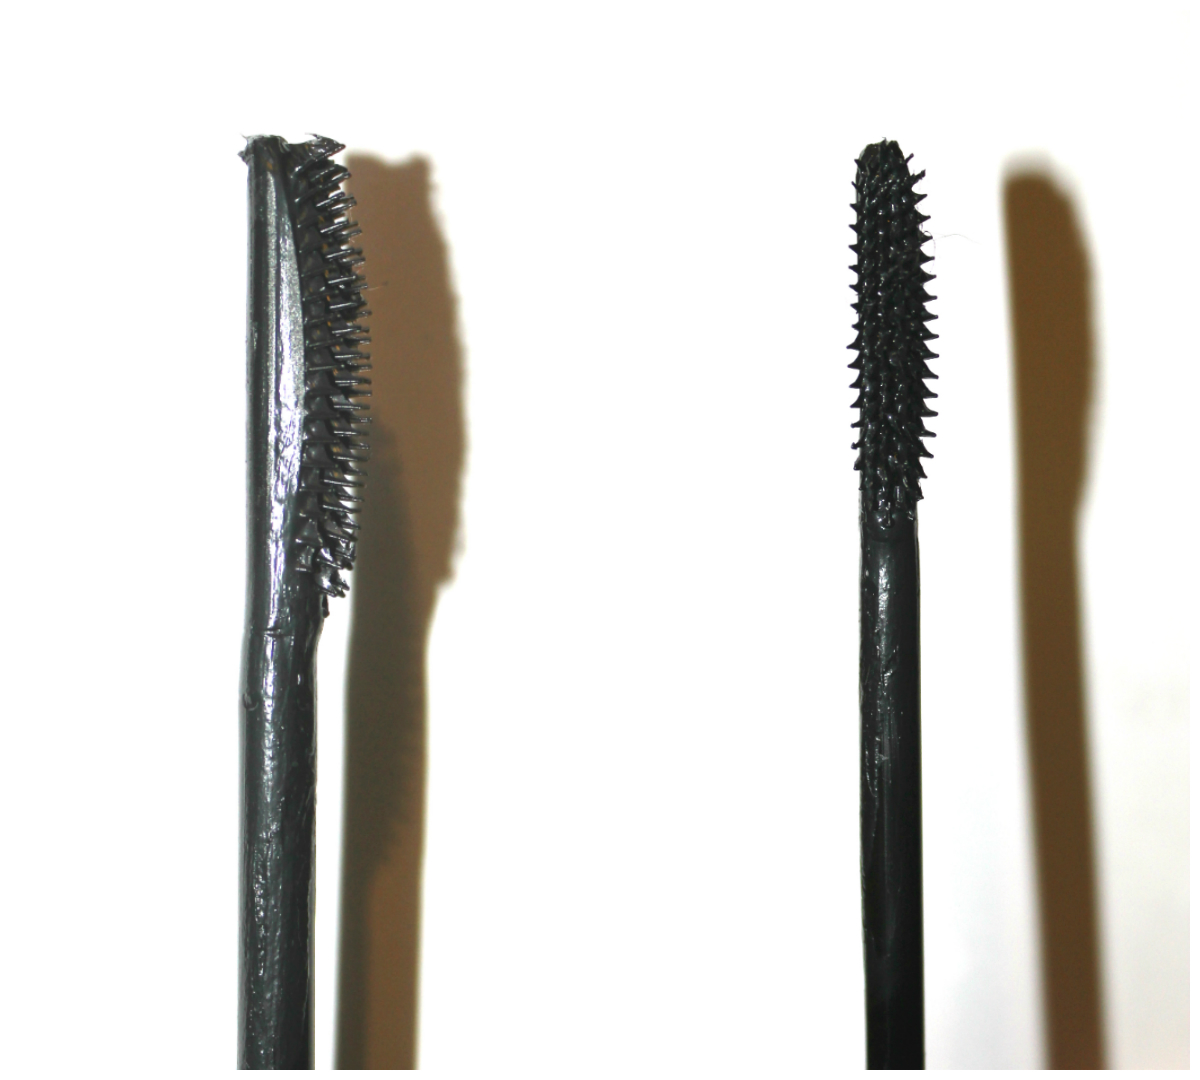 02534e318fe This mascara has a very smooth consistency which glides on a dream without  caking or clumping up your lashes. It is enriched with silk extract and is  ...